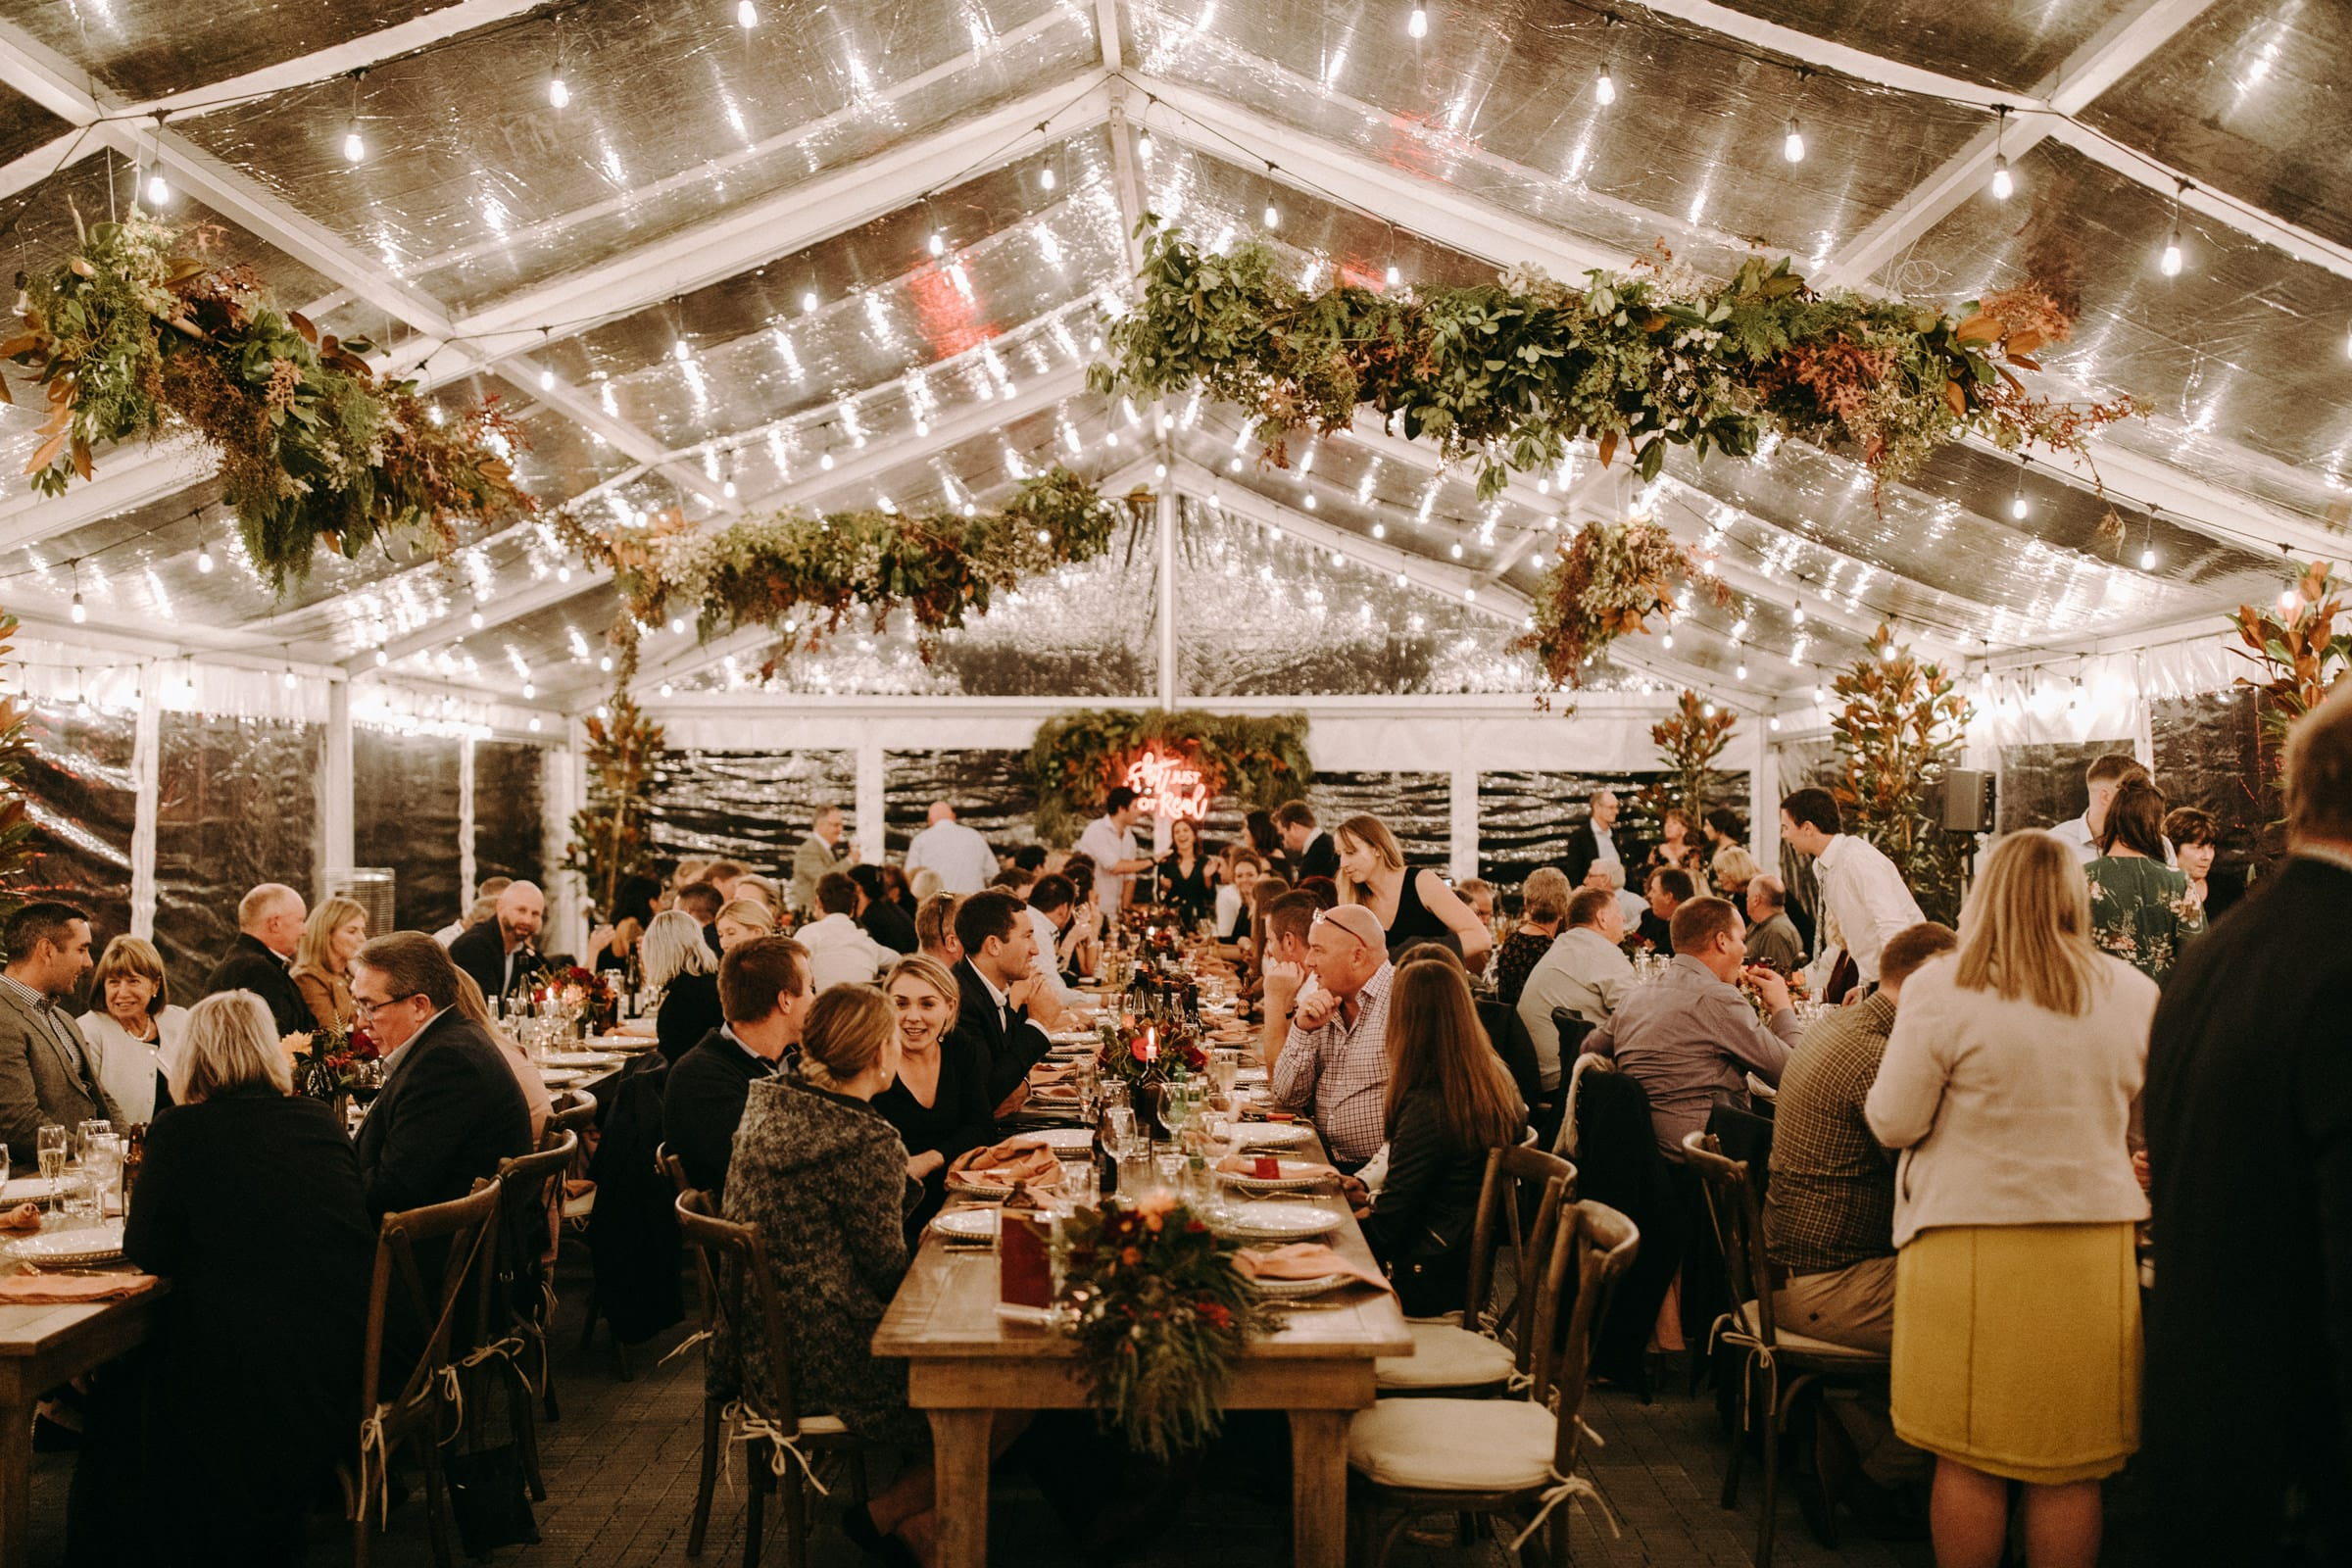 A big tent is decorated with light bulbs and branches and guests are sitting at three rows of tables.